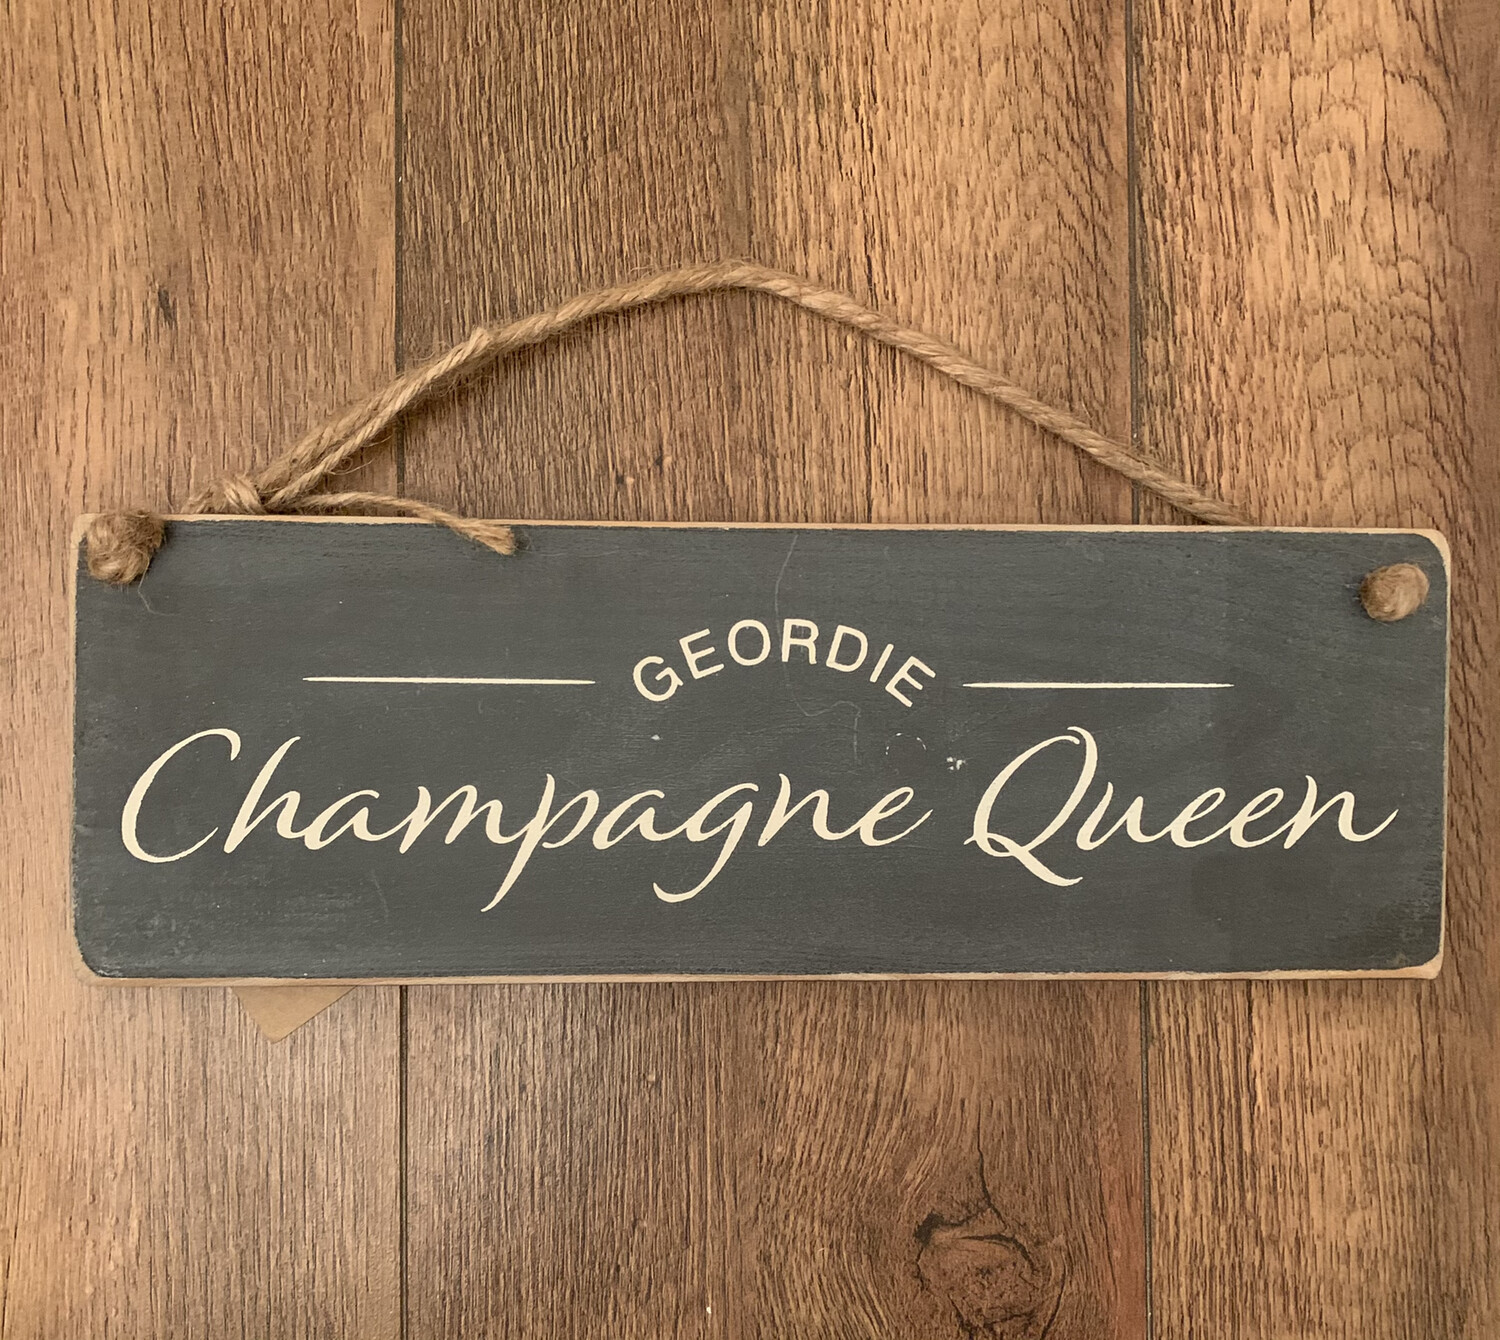 Geordie champagne queen